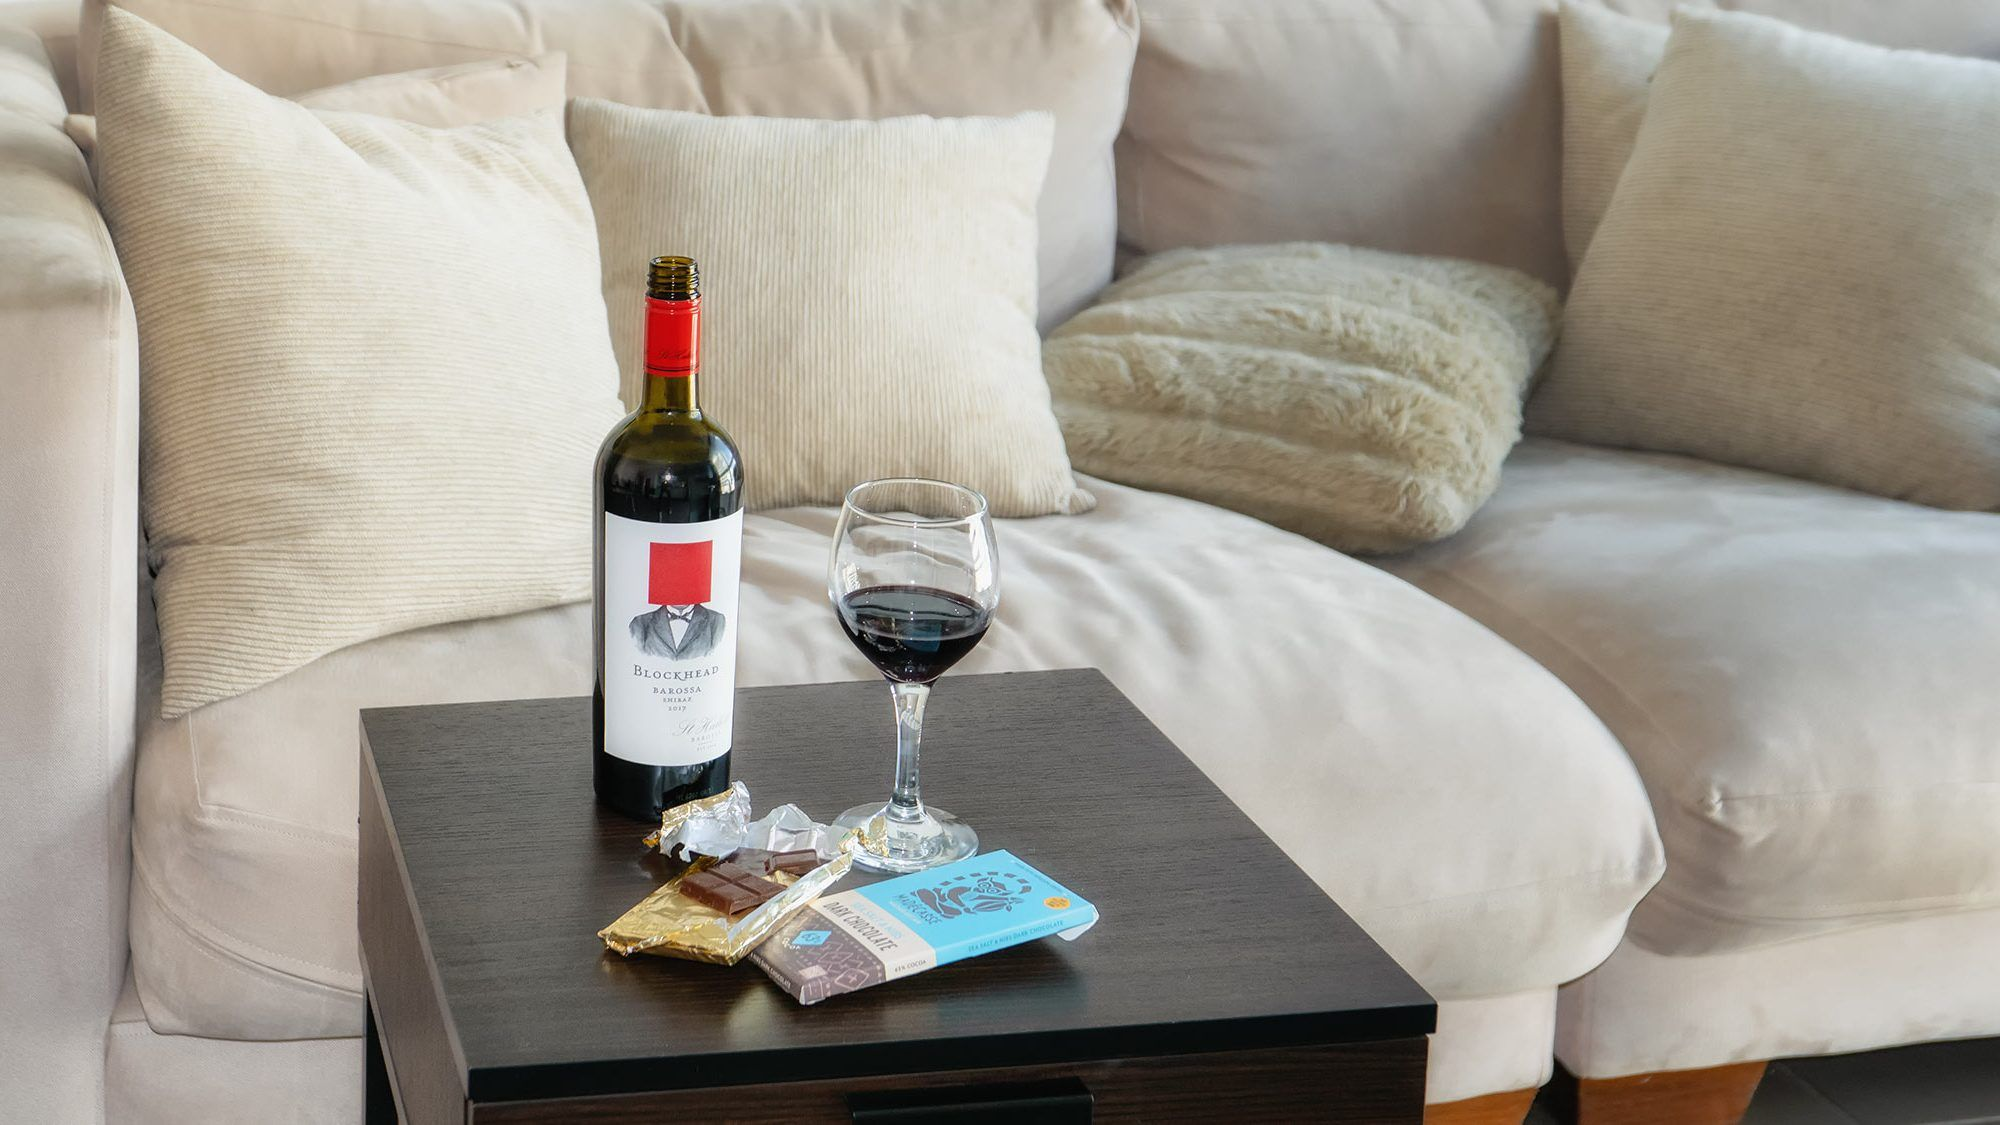 shiraz red wine and chocolate on a table